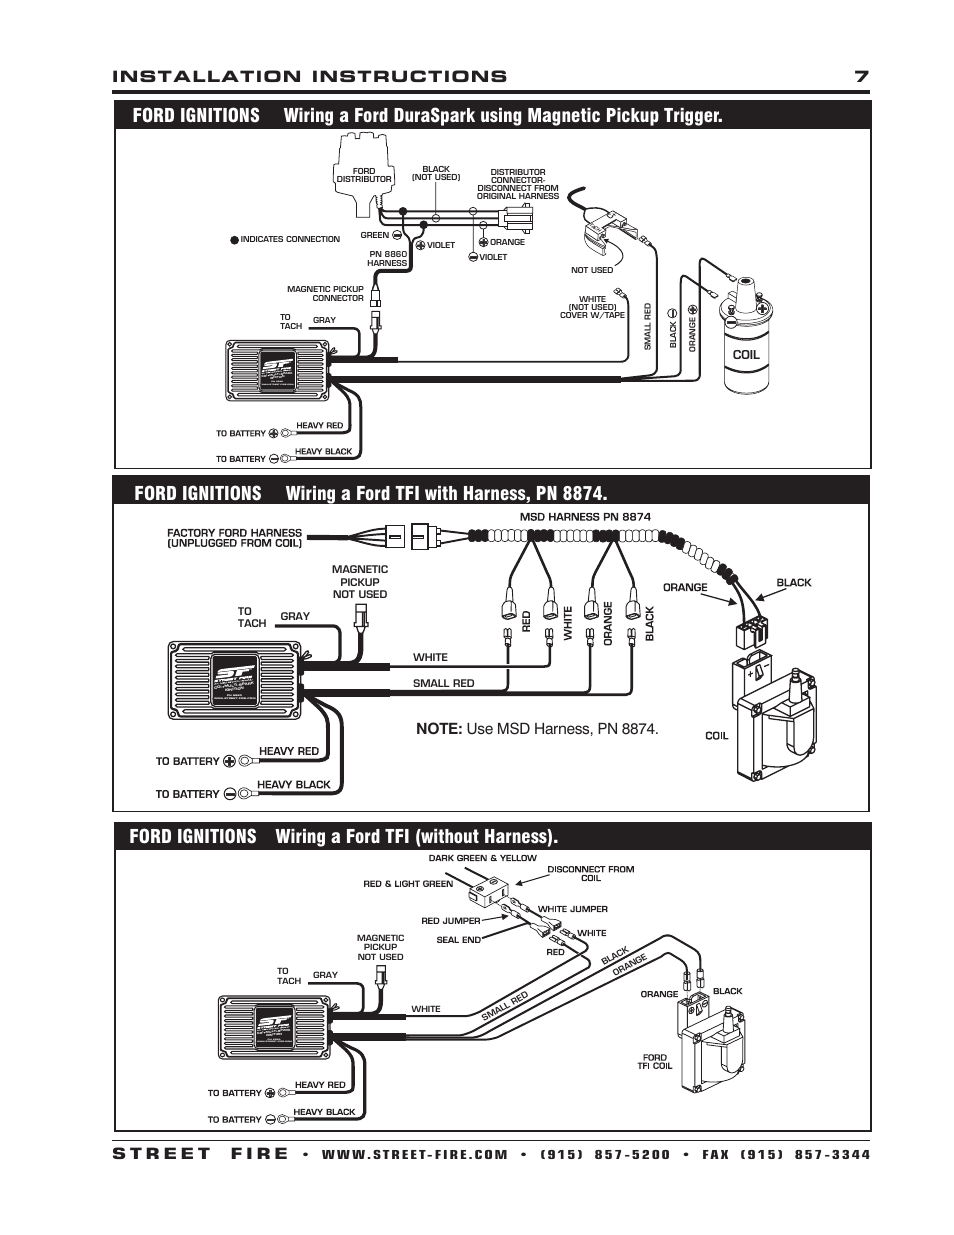 msd 5520 street fire ignition control installation page7 ford ignitions wiring a ford tfi (without harness) msd 5520 ford tfi wiring schematic at crackthecode.co